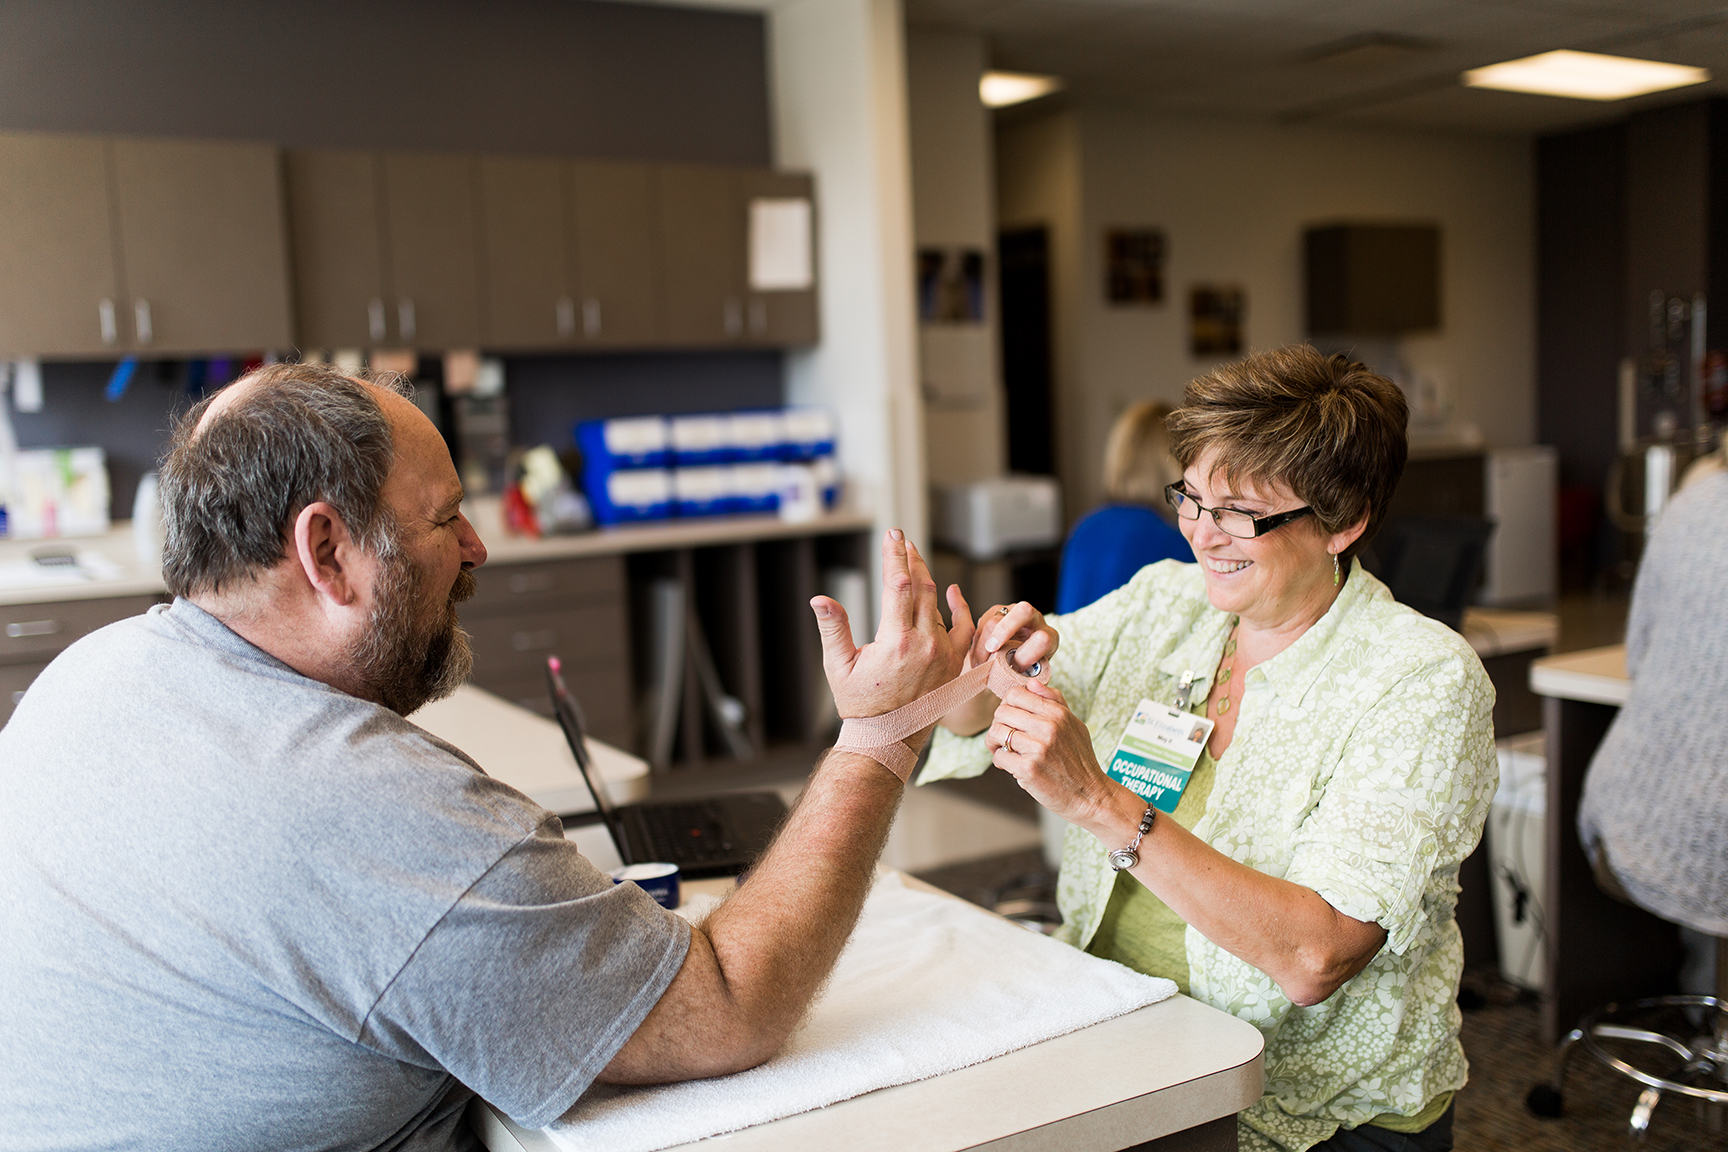 relieve thumb pain with a joint replacement healthy headlines